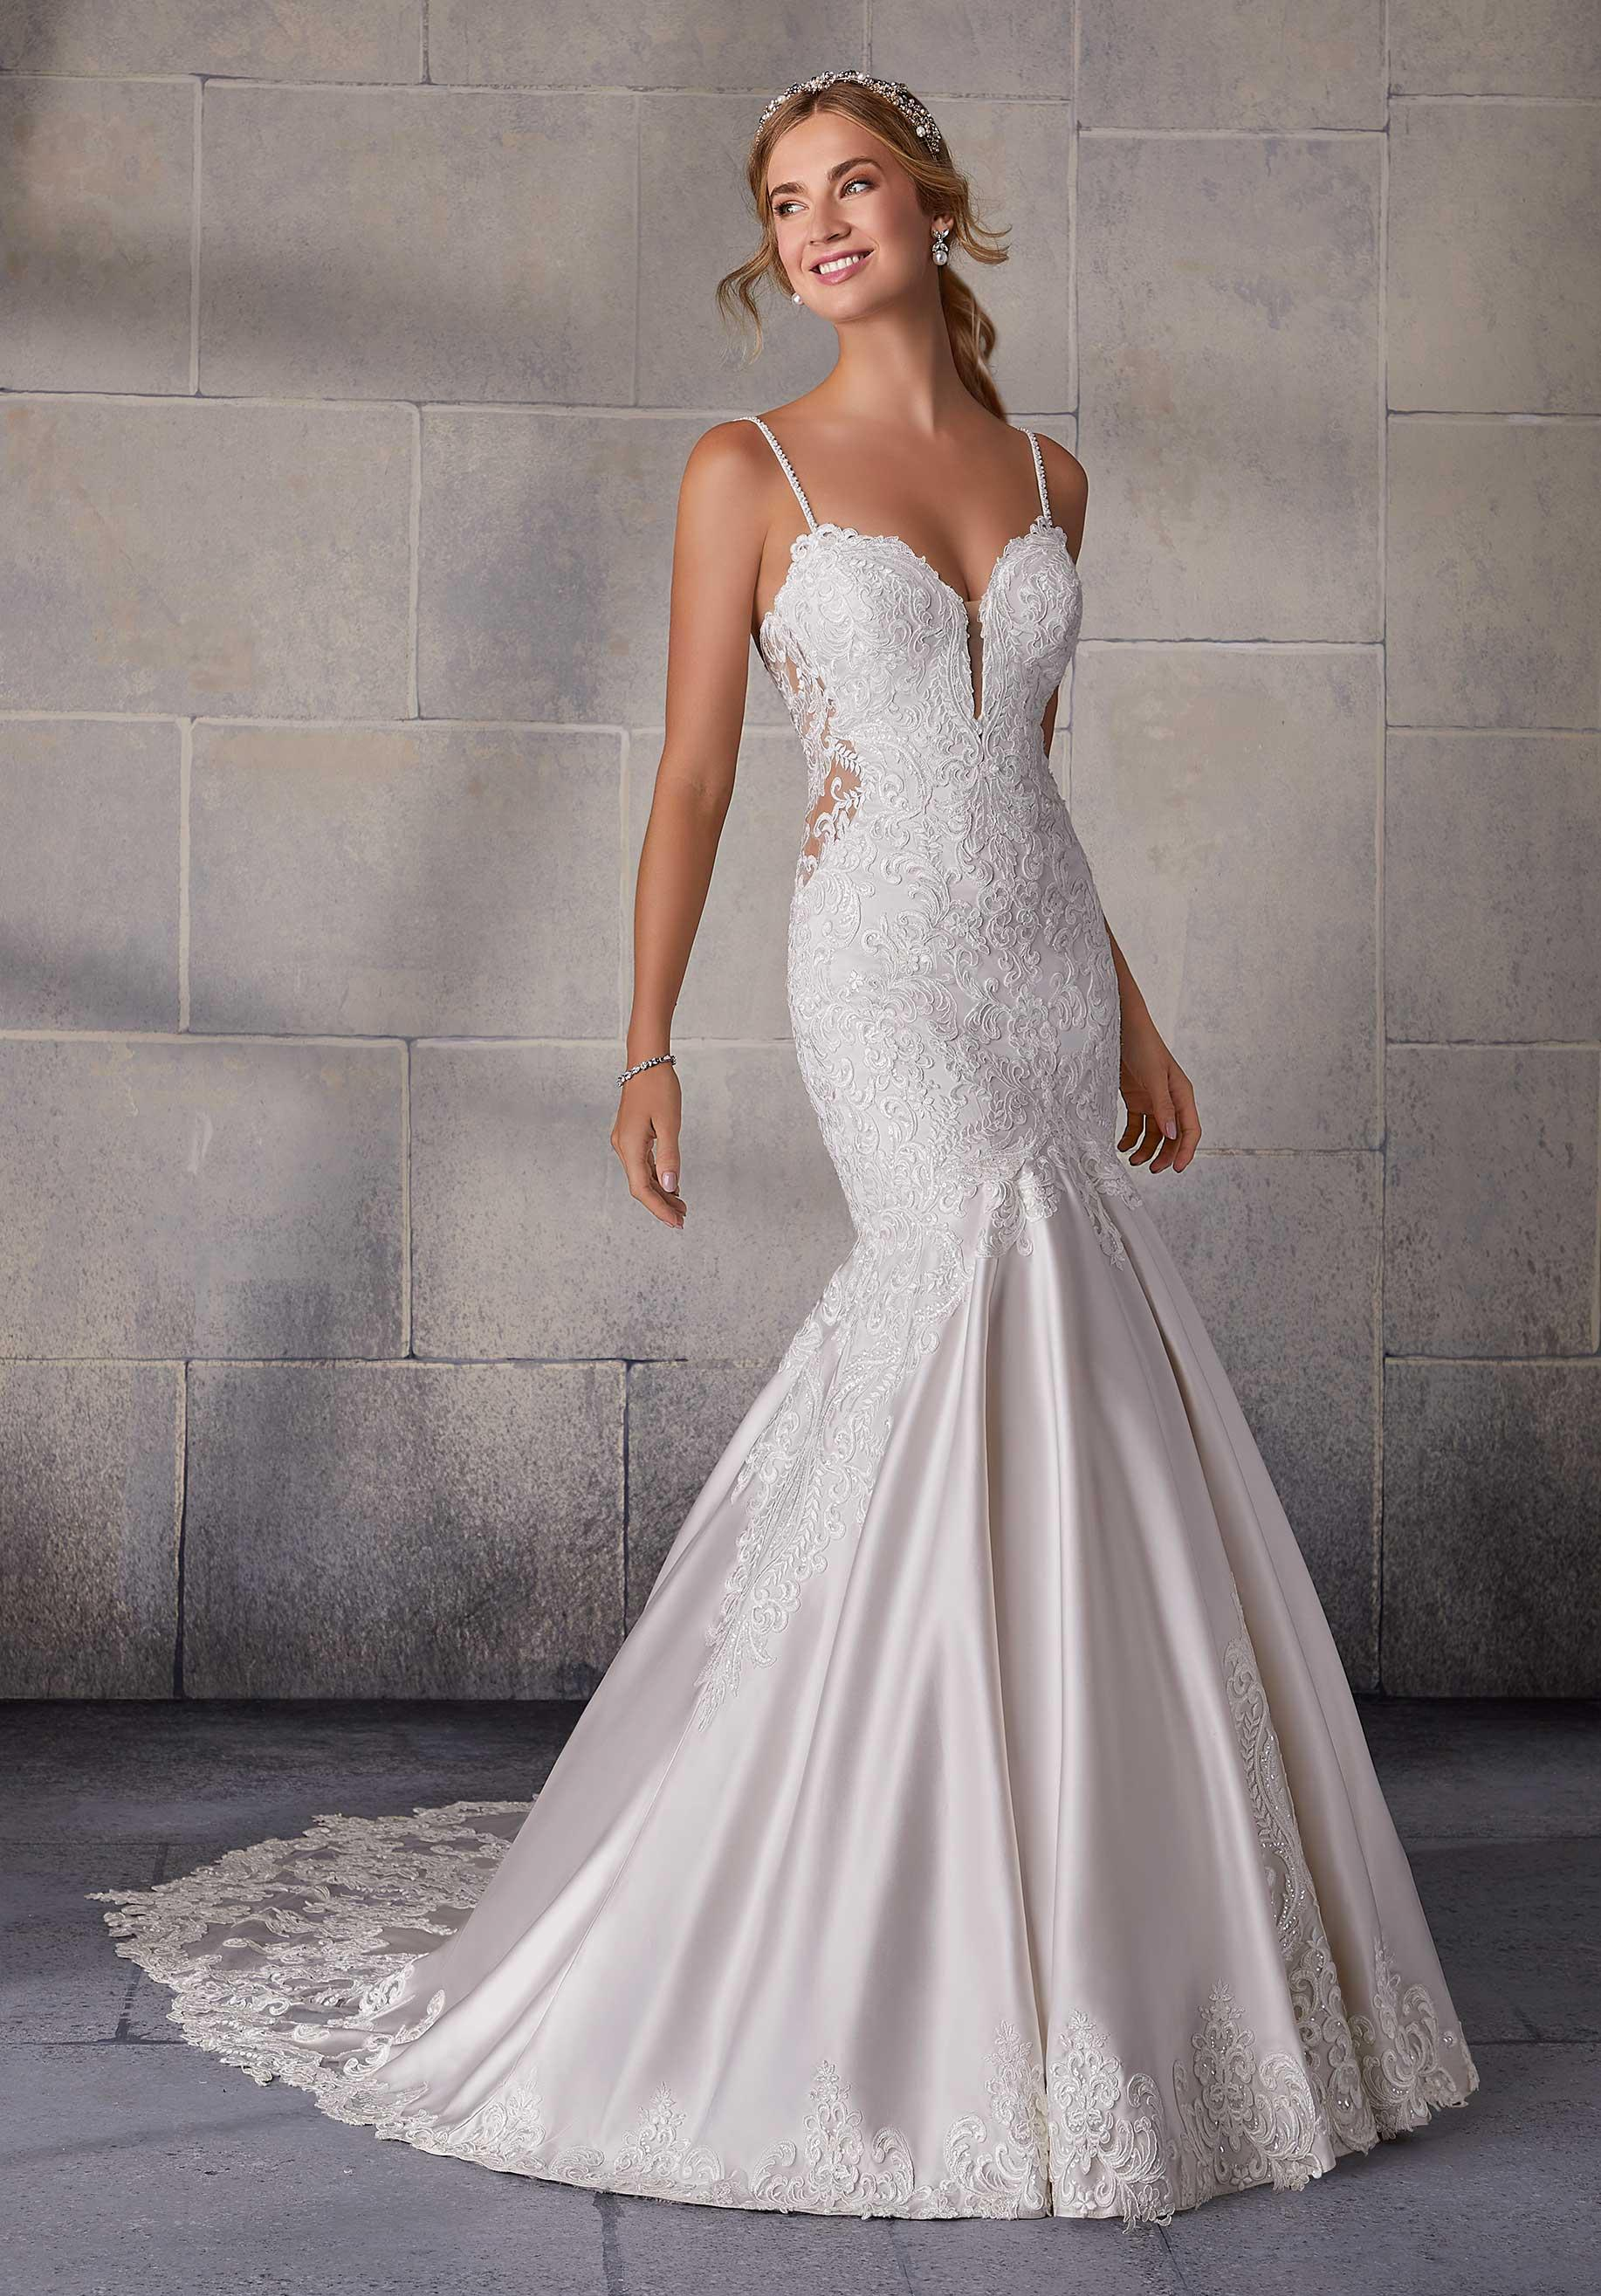 Wedding Gown Features A Form Fitting Satin Mermaid Silhouette Accented With Moonstone And Pearl Beaded Straps Mermaid Gown Plus Size Bridal Gowns From